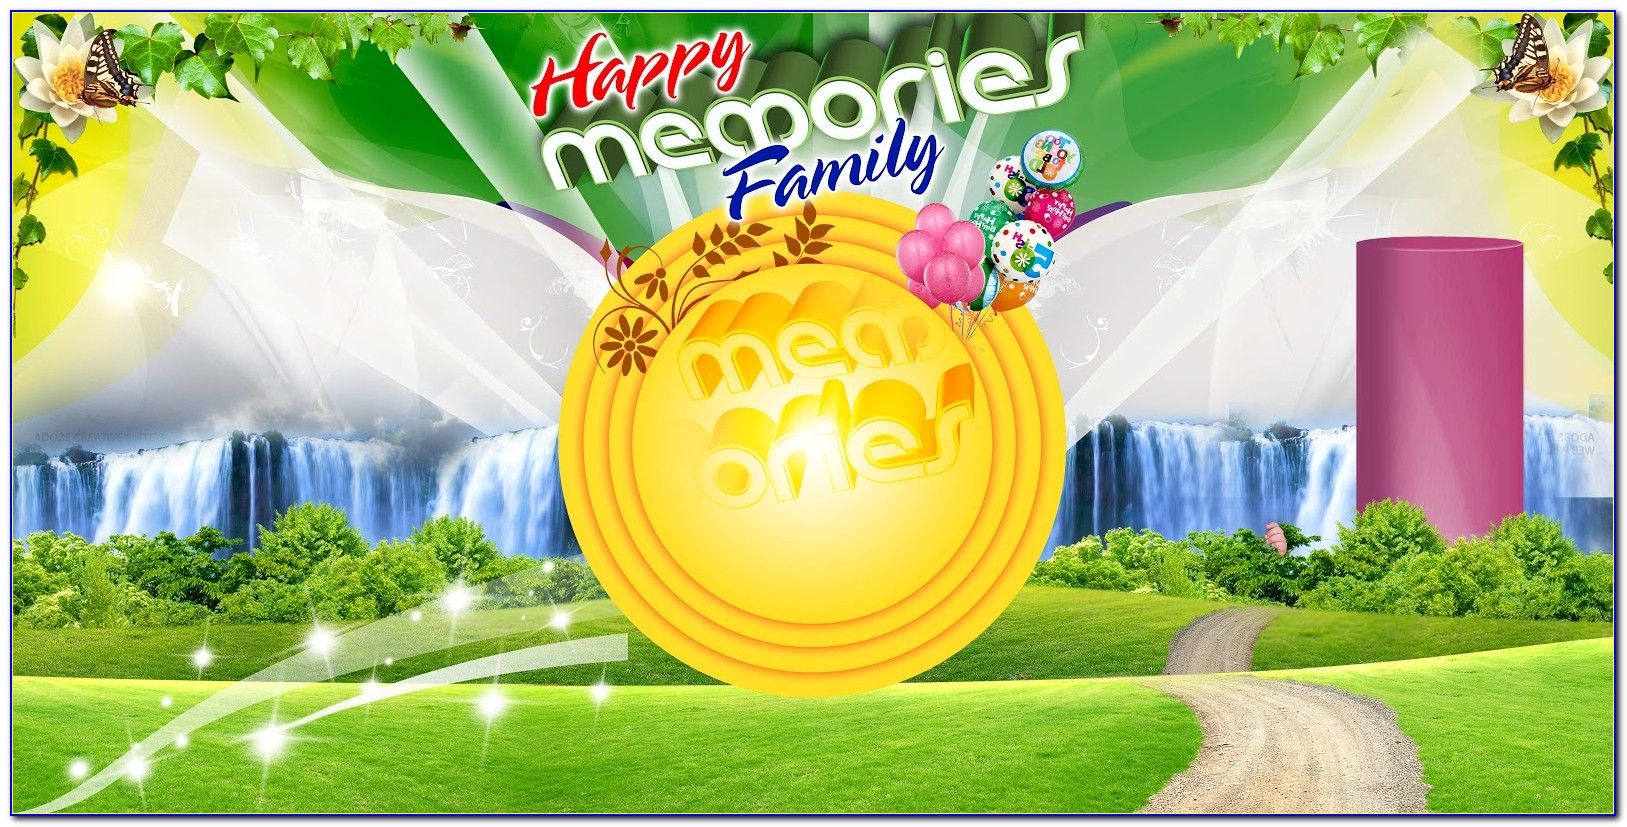 Birthday Banner Templates Free Vincegray2014 Fort mchenry vinyl banners flag pennon images banner background hd wedding banner vector art 51 digital flex banner psd collections birthday banner background 2600 best all thala viswasam banner collection s4. birthday banner templates free